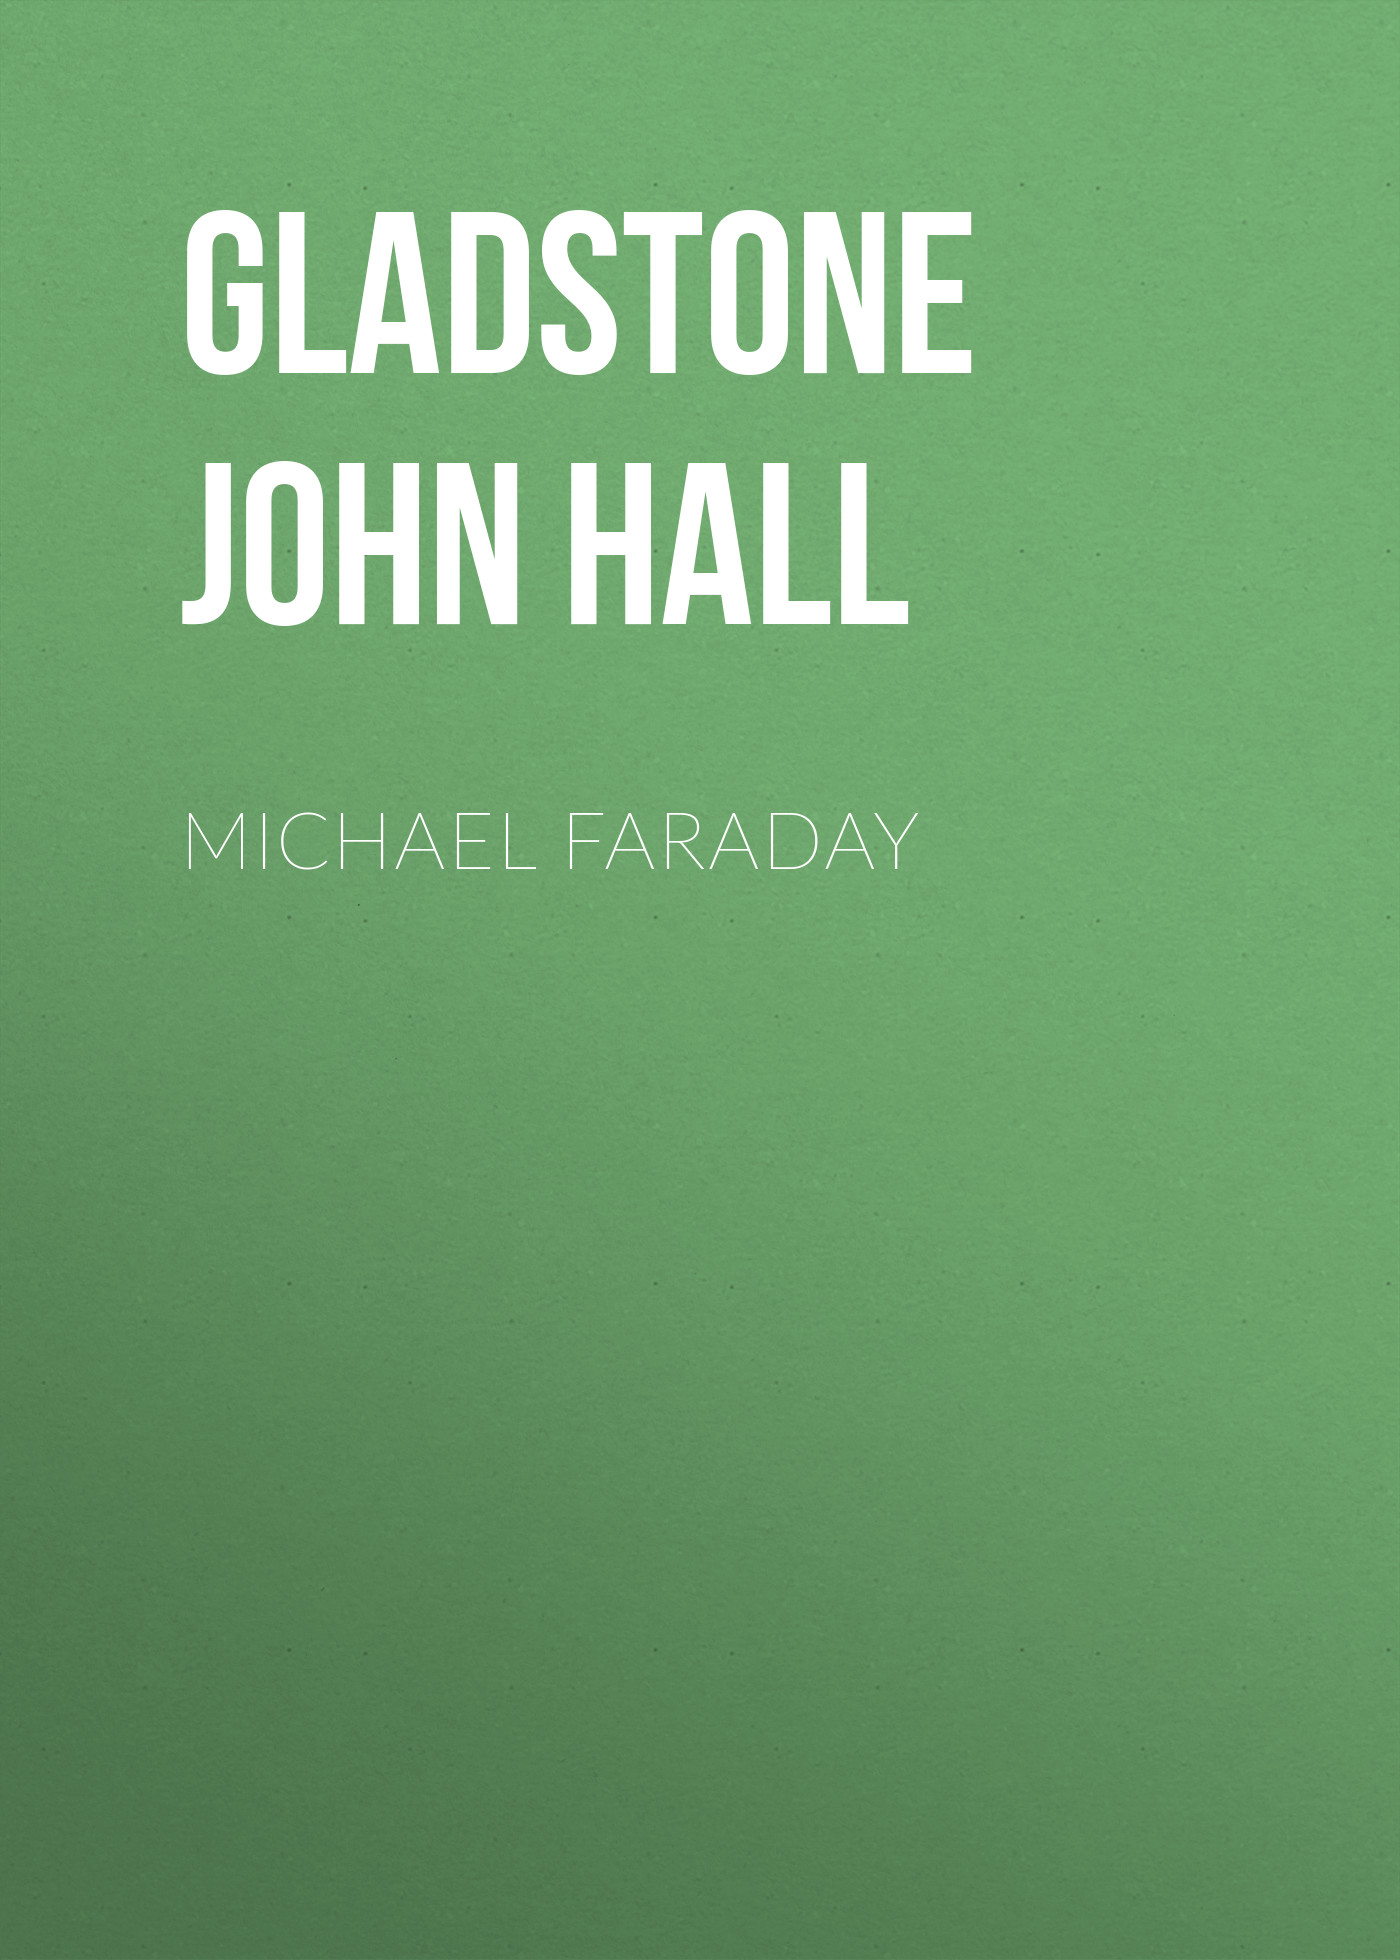 Gladstone John Hall Michael Faraday